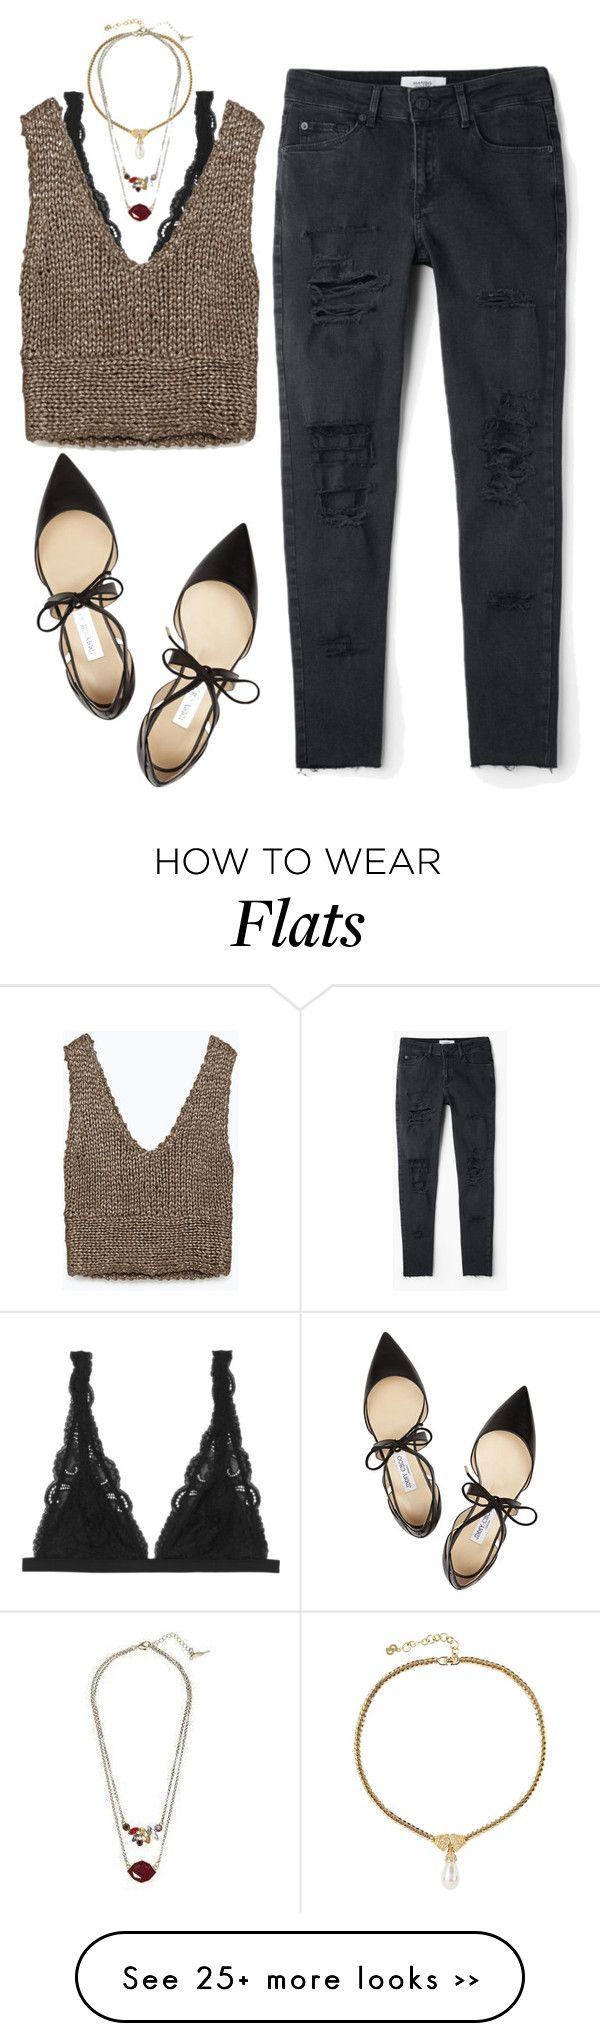 """""""➣"""" by kennedydrm9 on Polyvore featuring Monki, Zara, MANGO, Jimmy Choo and Susan Caplan Vintage"""